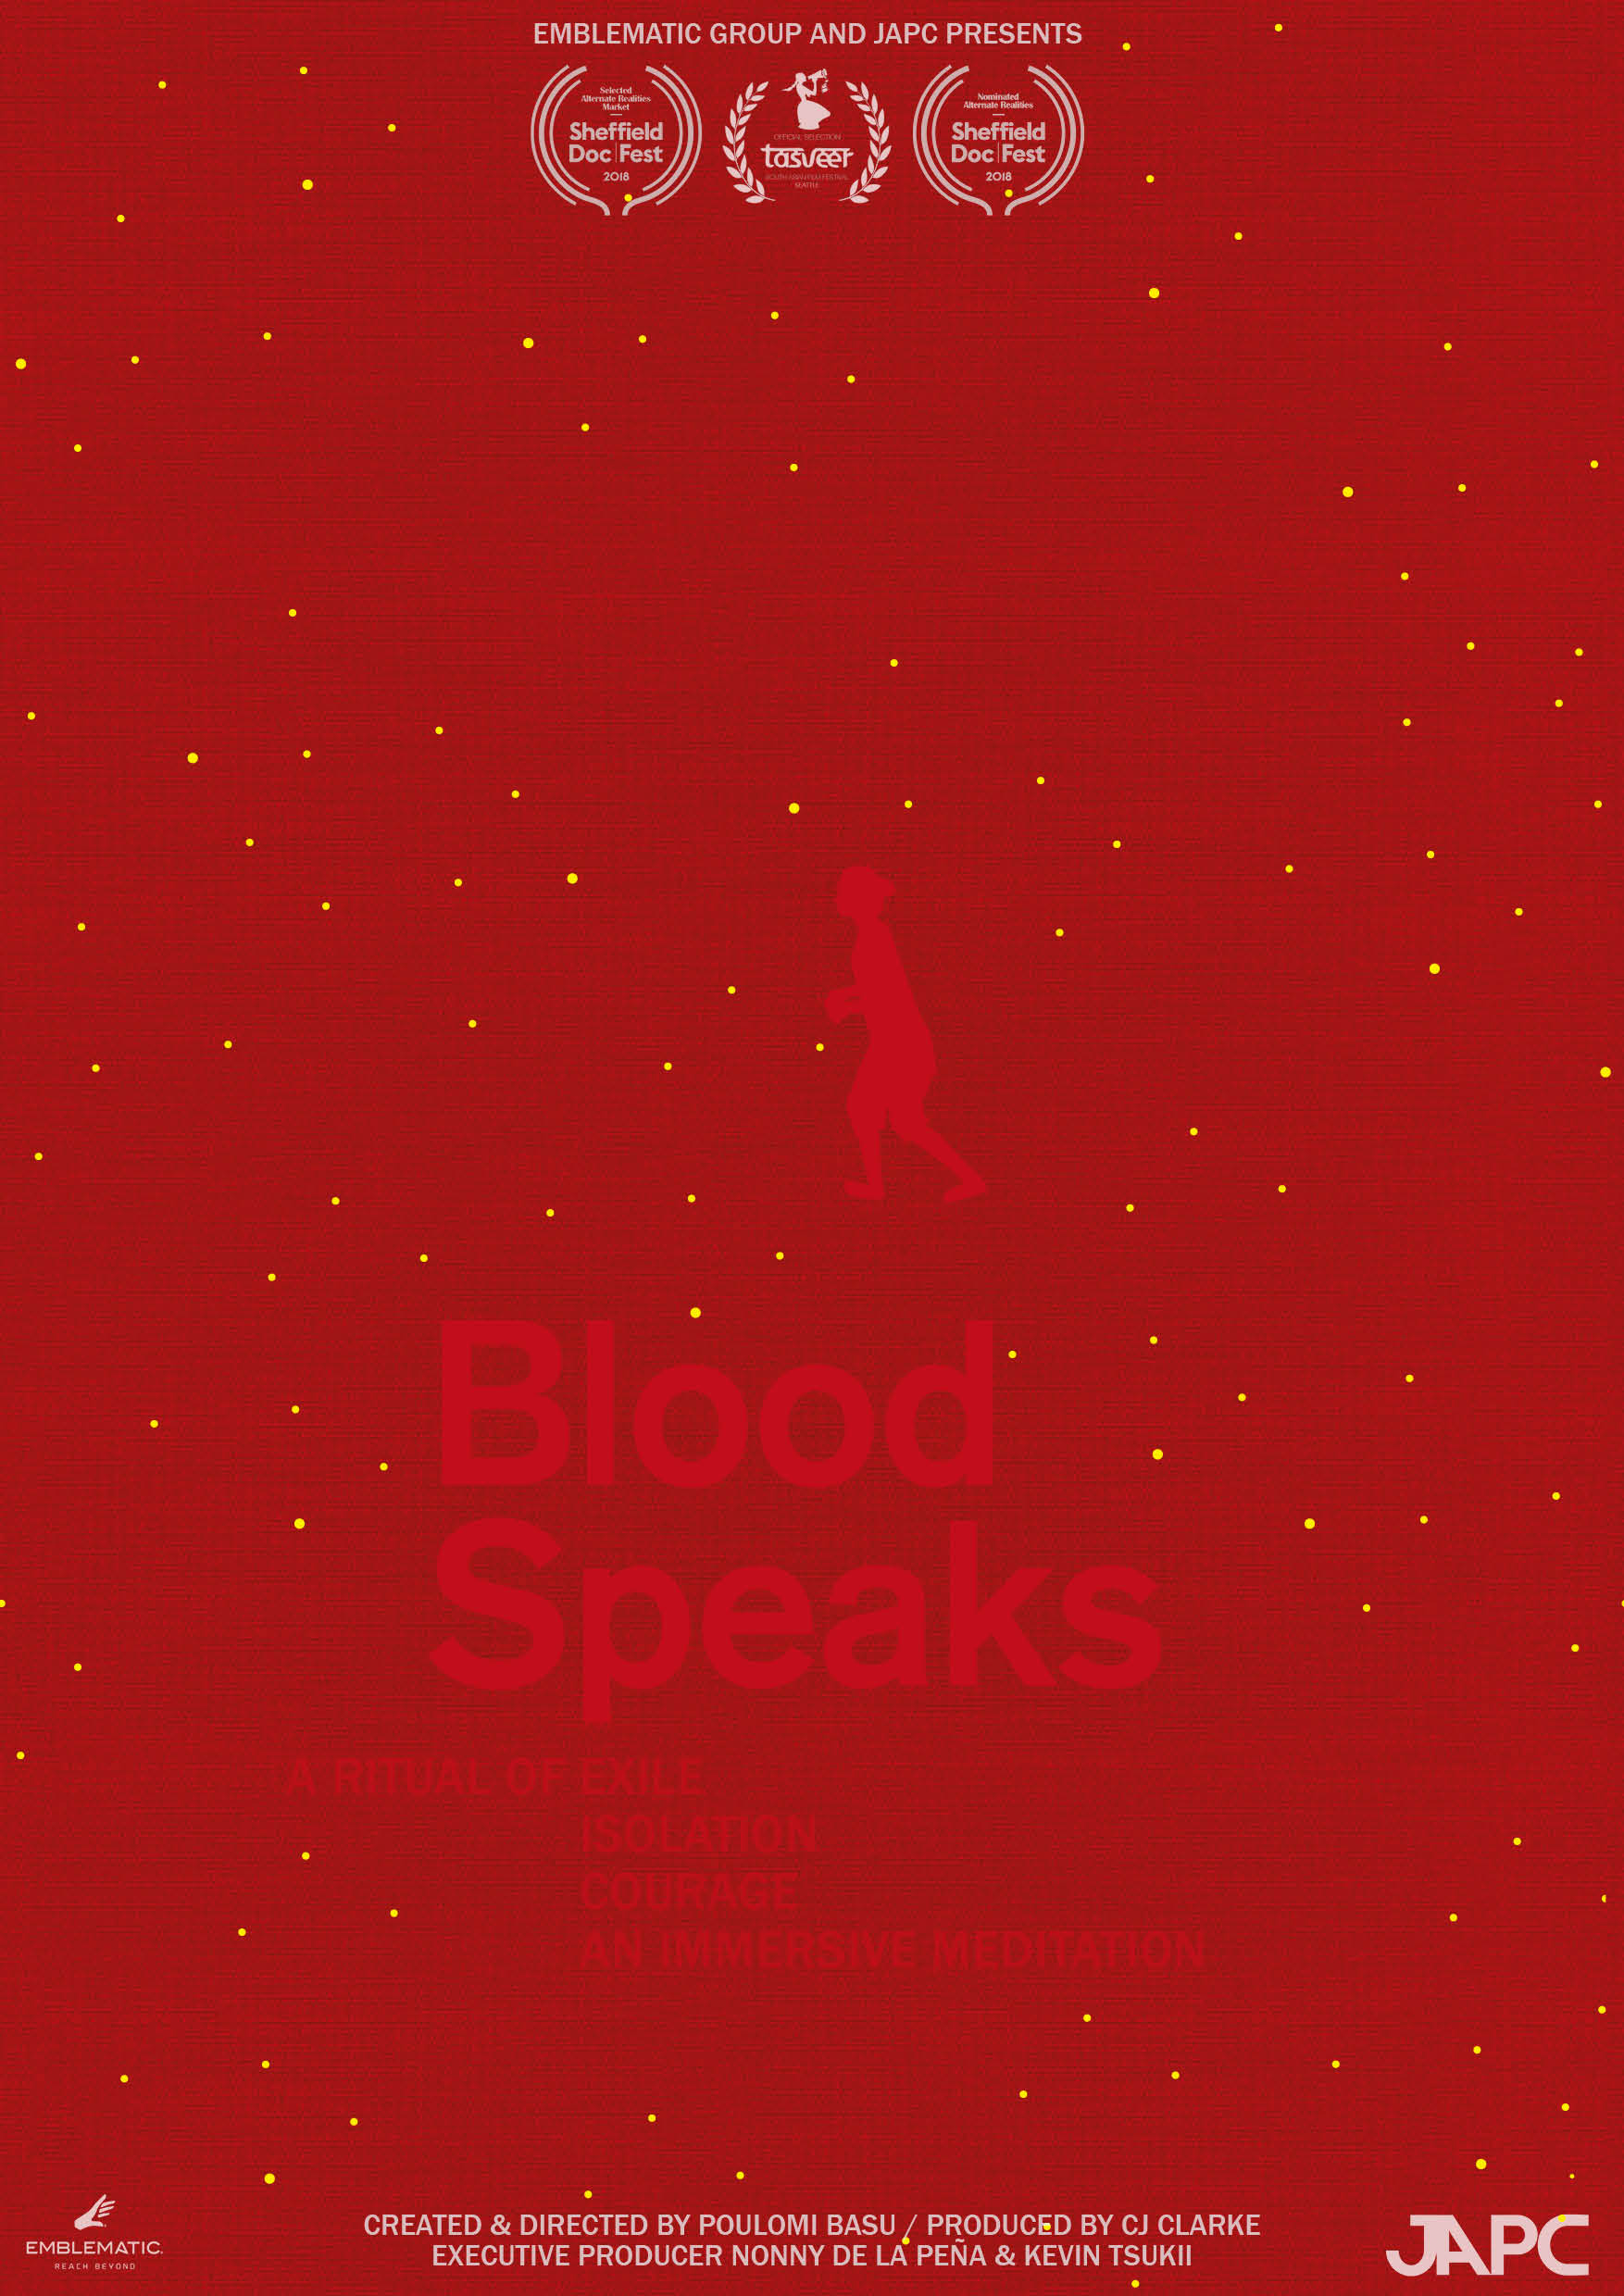 BLOOD_SPEAKS_POSTER_DRAFT_FINAL_03-10-18.jpg